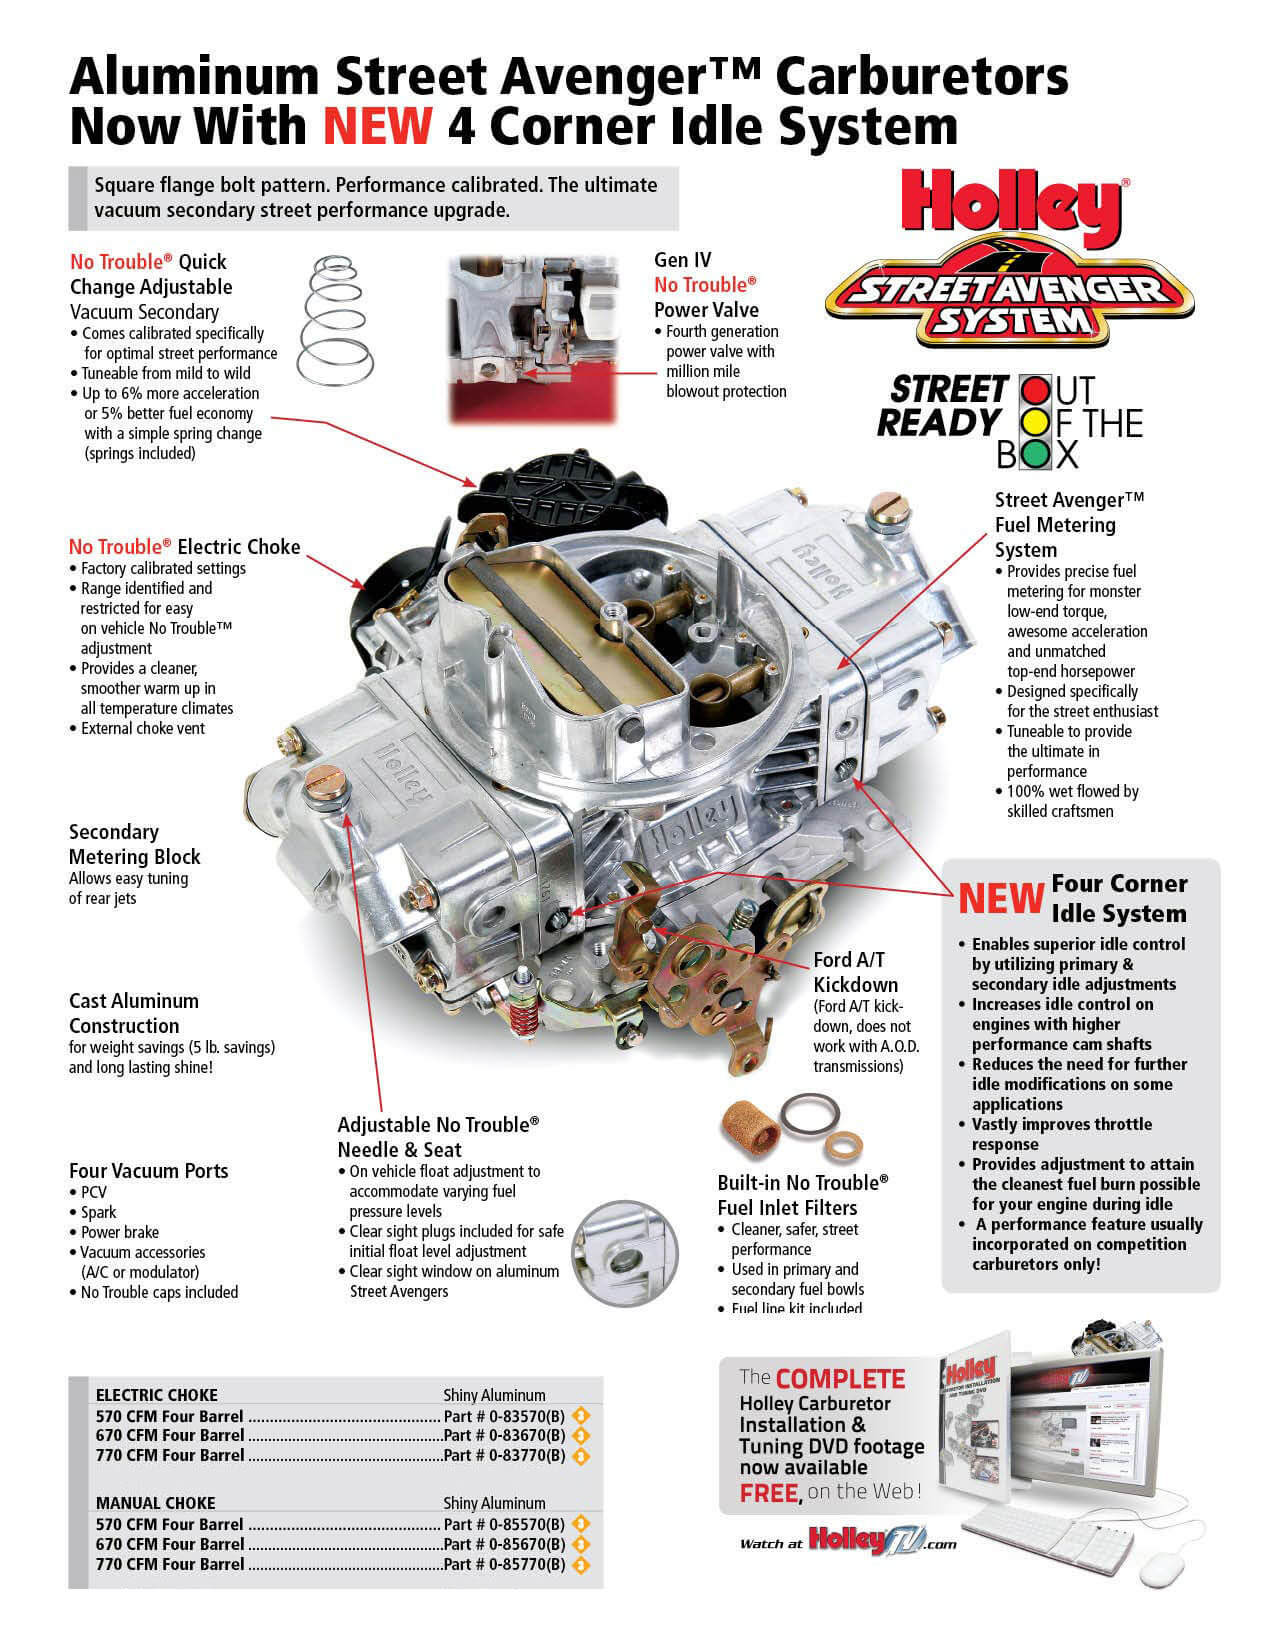 medium resolution of 1967 1991 amc v8 holley 570 cfm street avenger aluminum carburetor vacuum secondaries manual choke